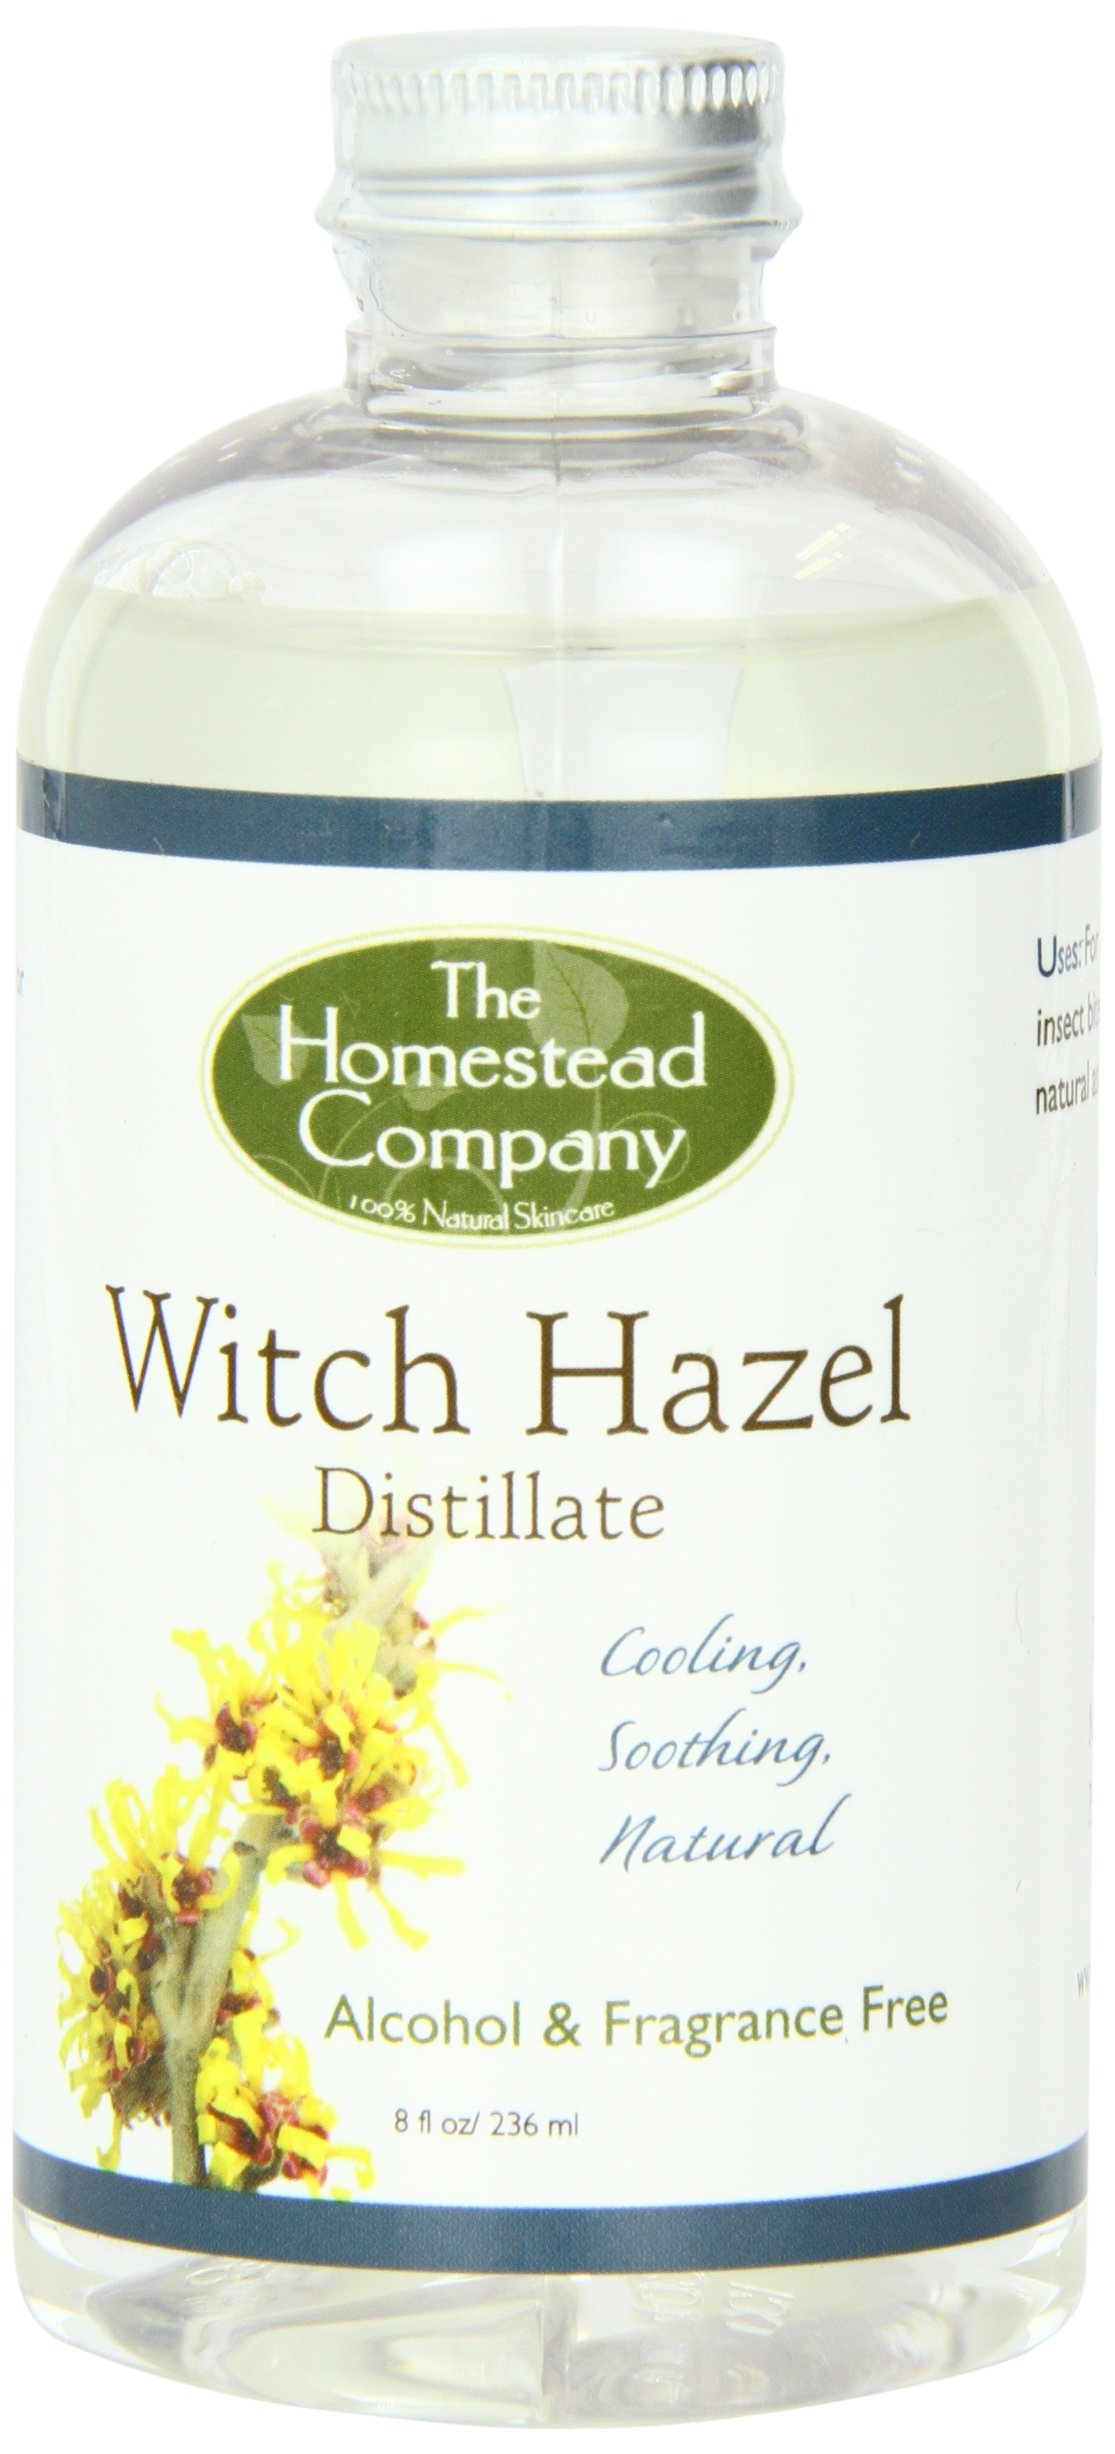 The Homestead Company - Witch Hazel Distillate Alcohol & Fragrance Free - 8 oz.